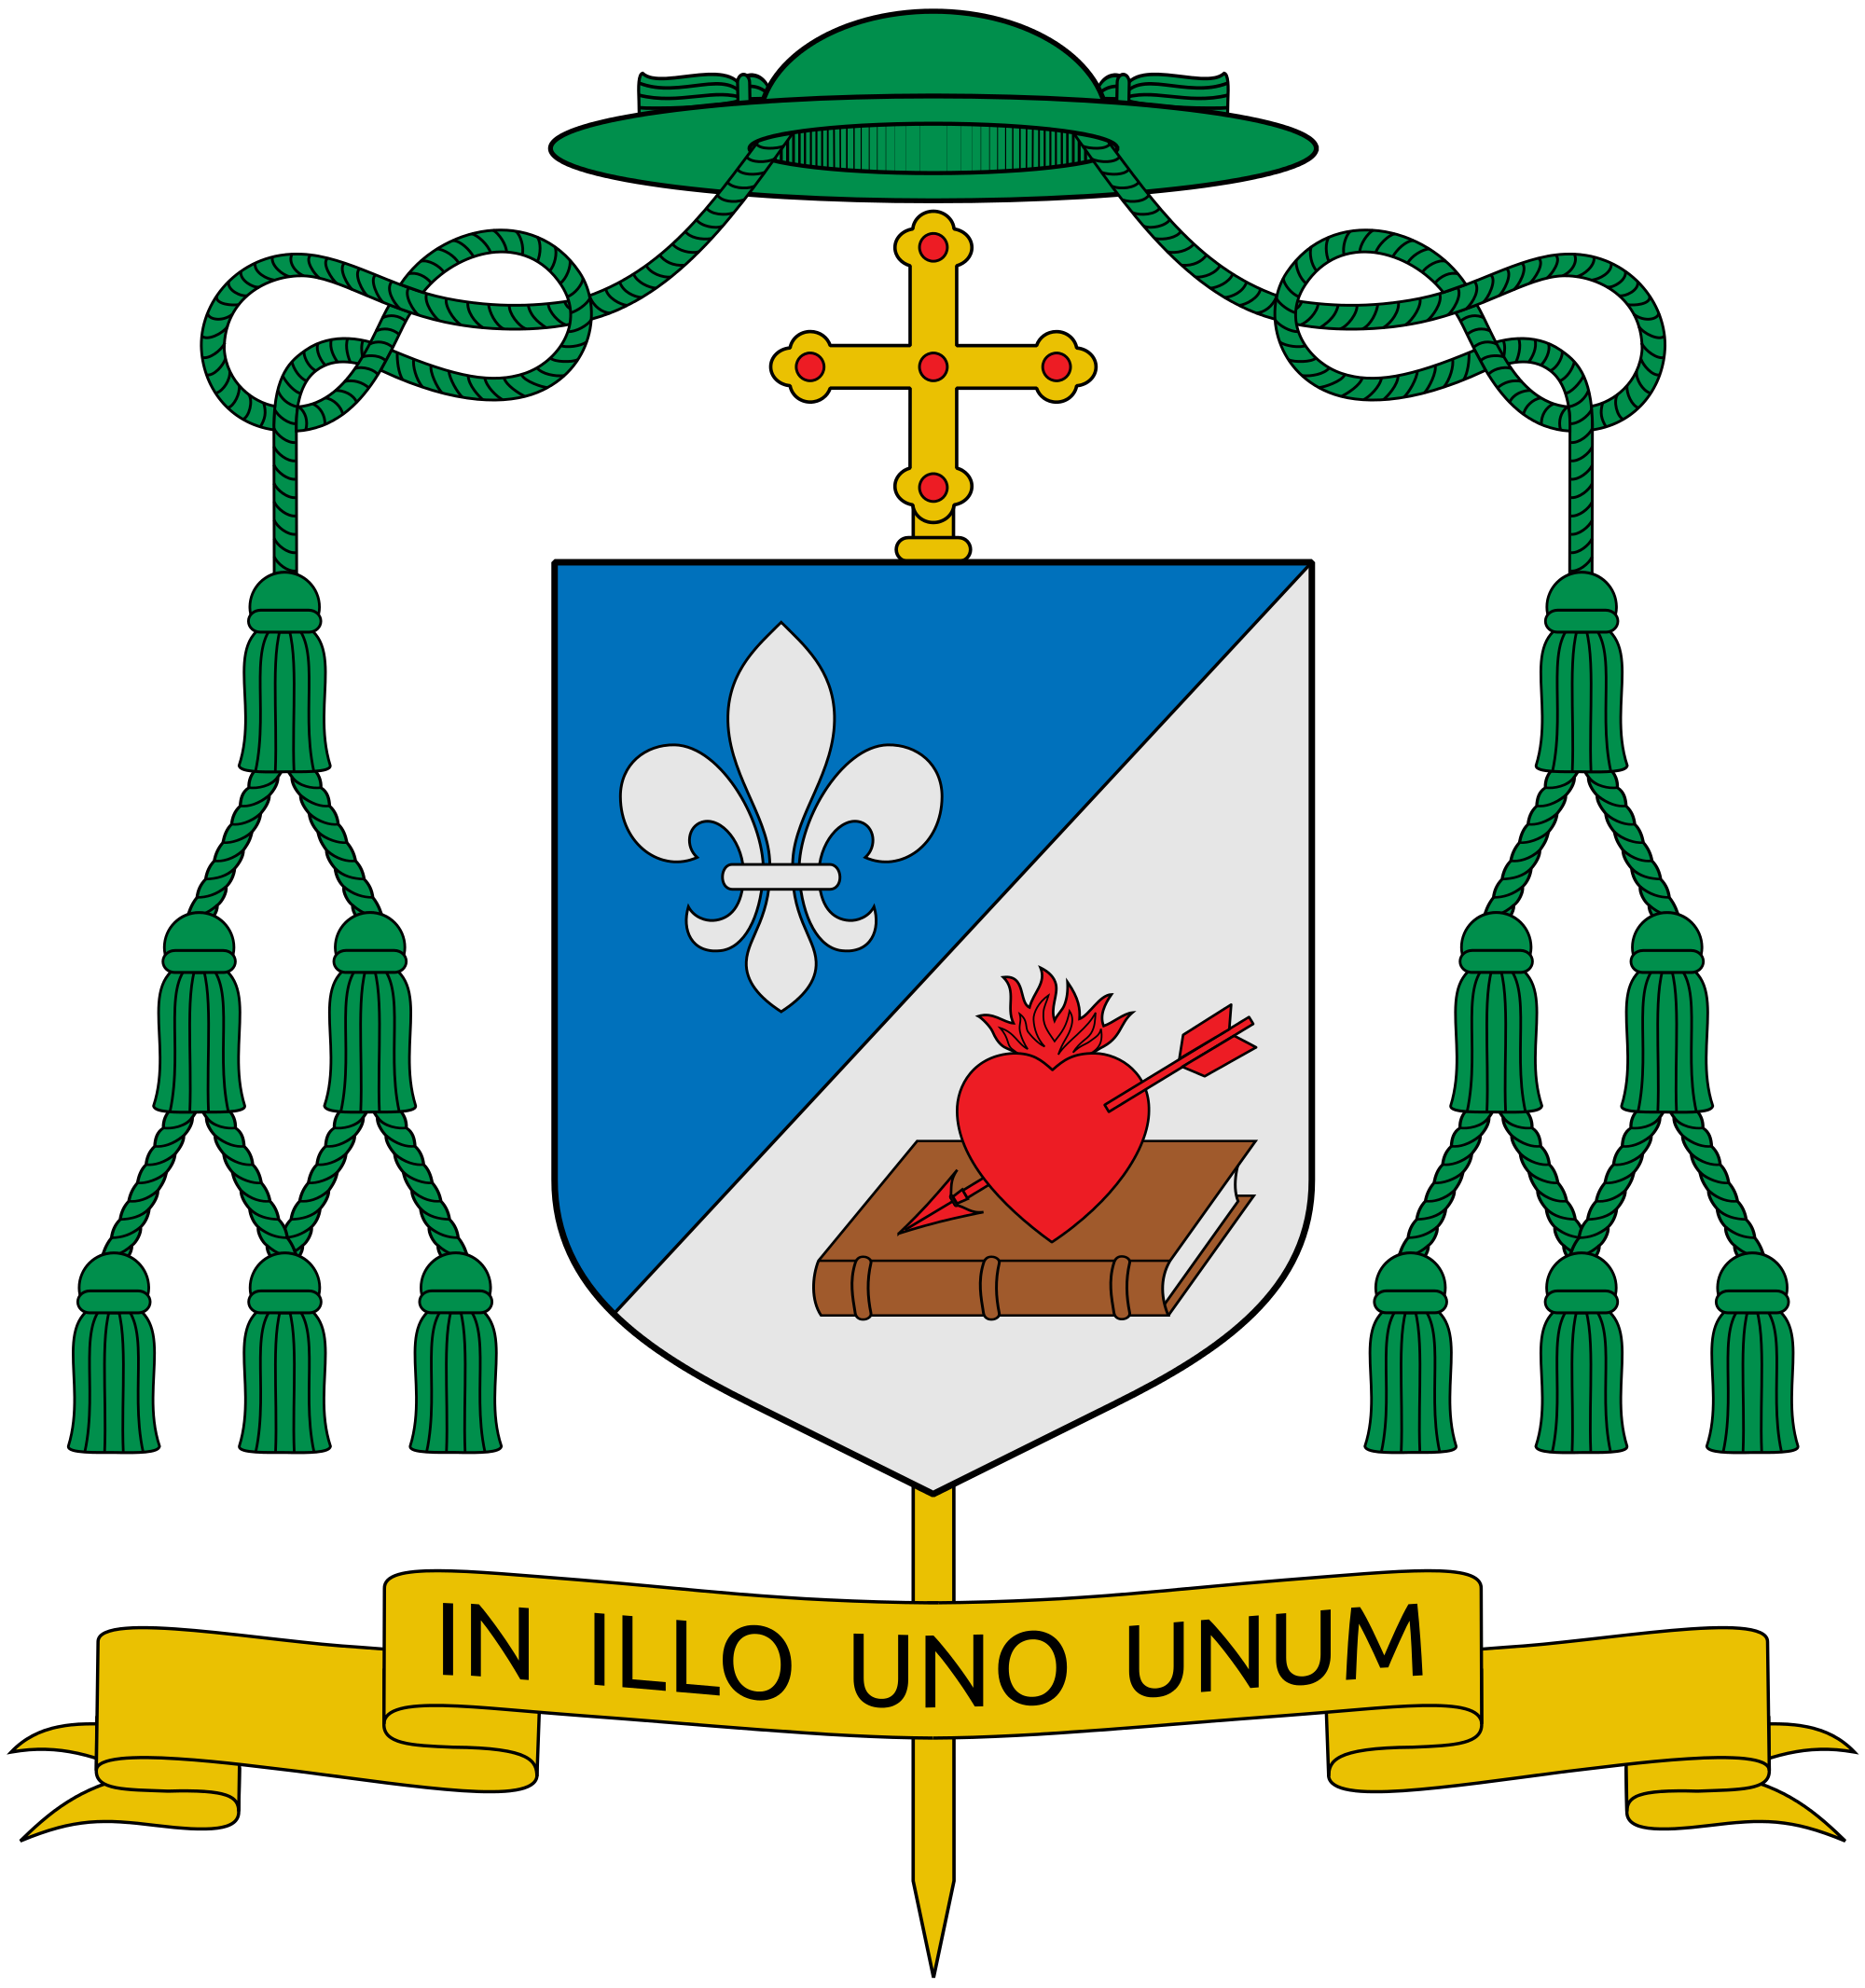 File:Coat of arms of Robert Francis Prevost Martinez.svg.